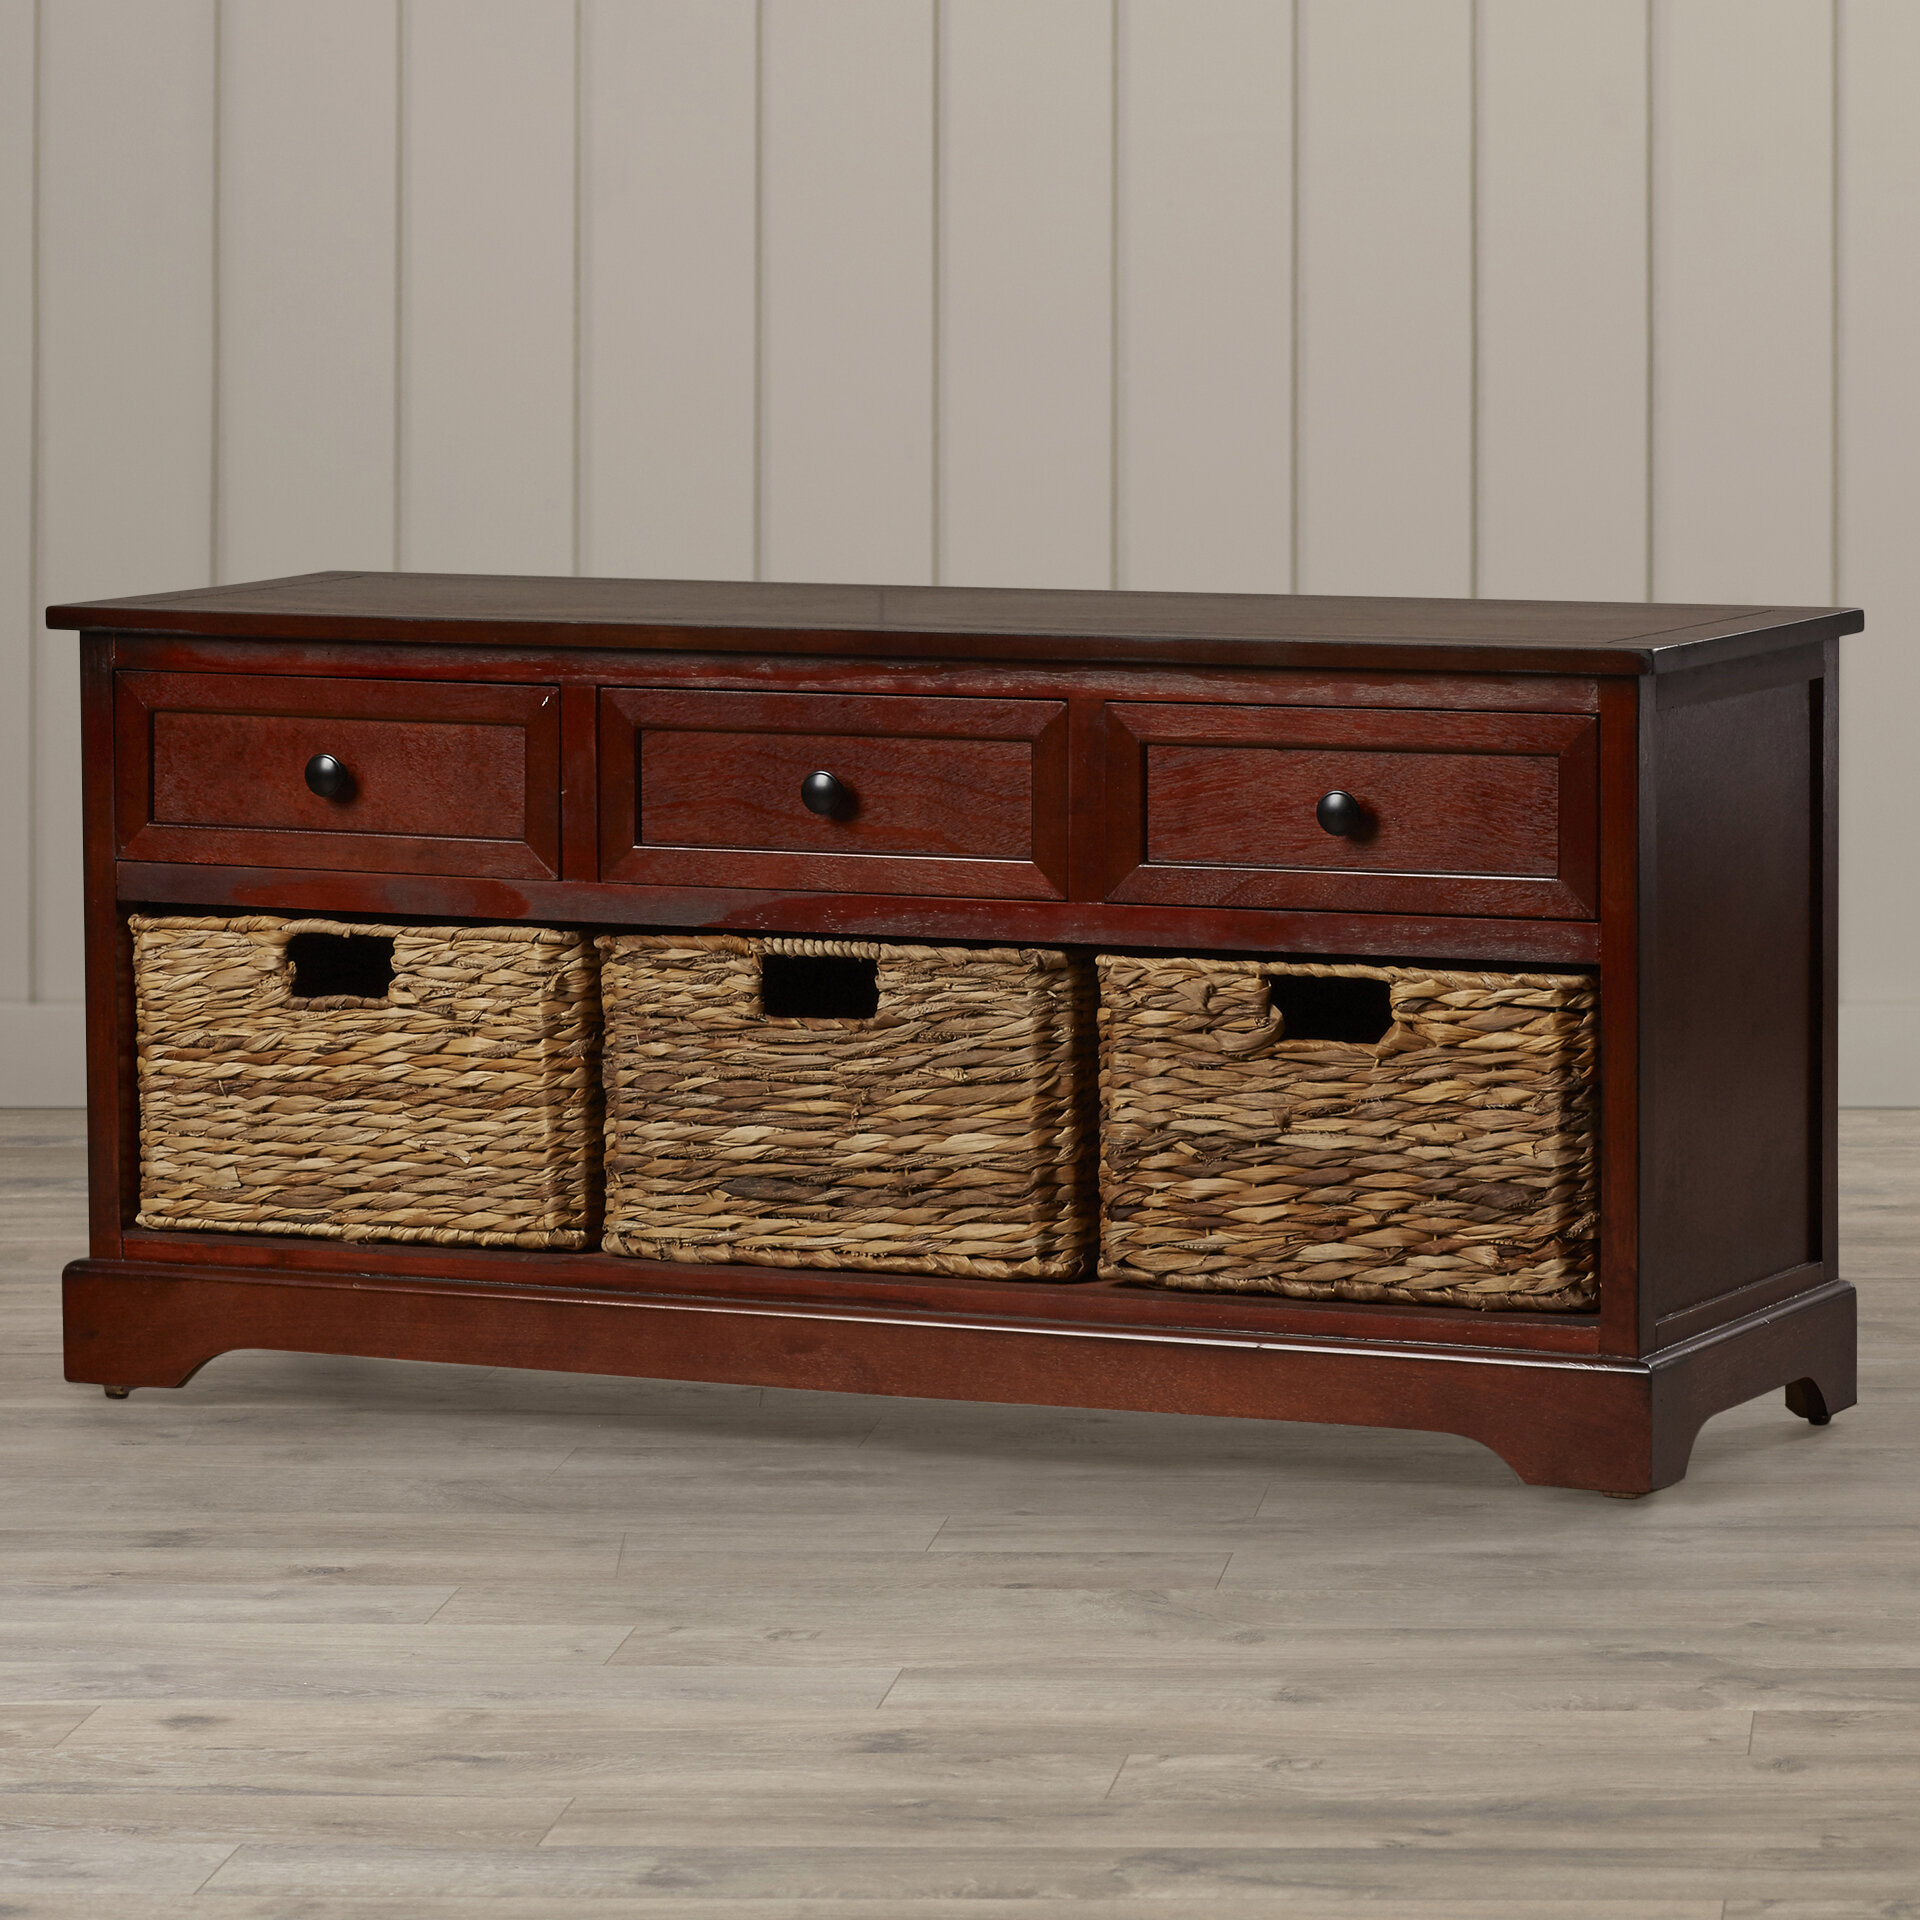 remove basket by the a pin jays wooden that of drawer studio o drawers bench options profile storage offers with space plenty cabinet low accessories and